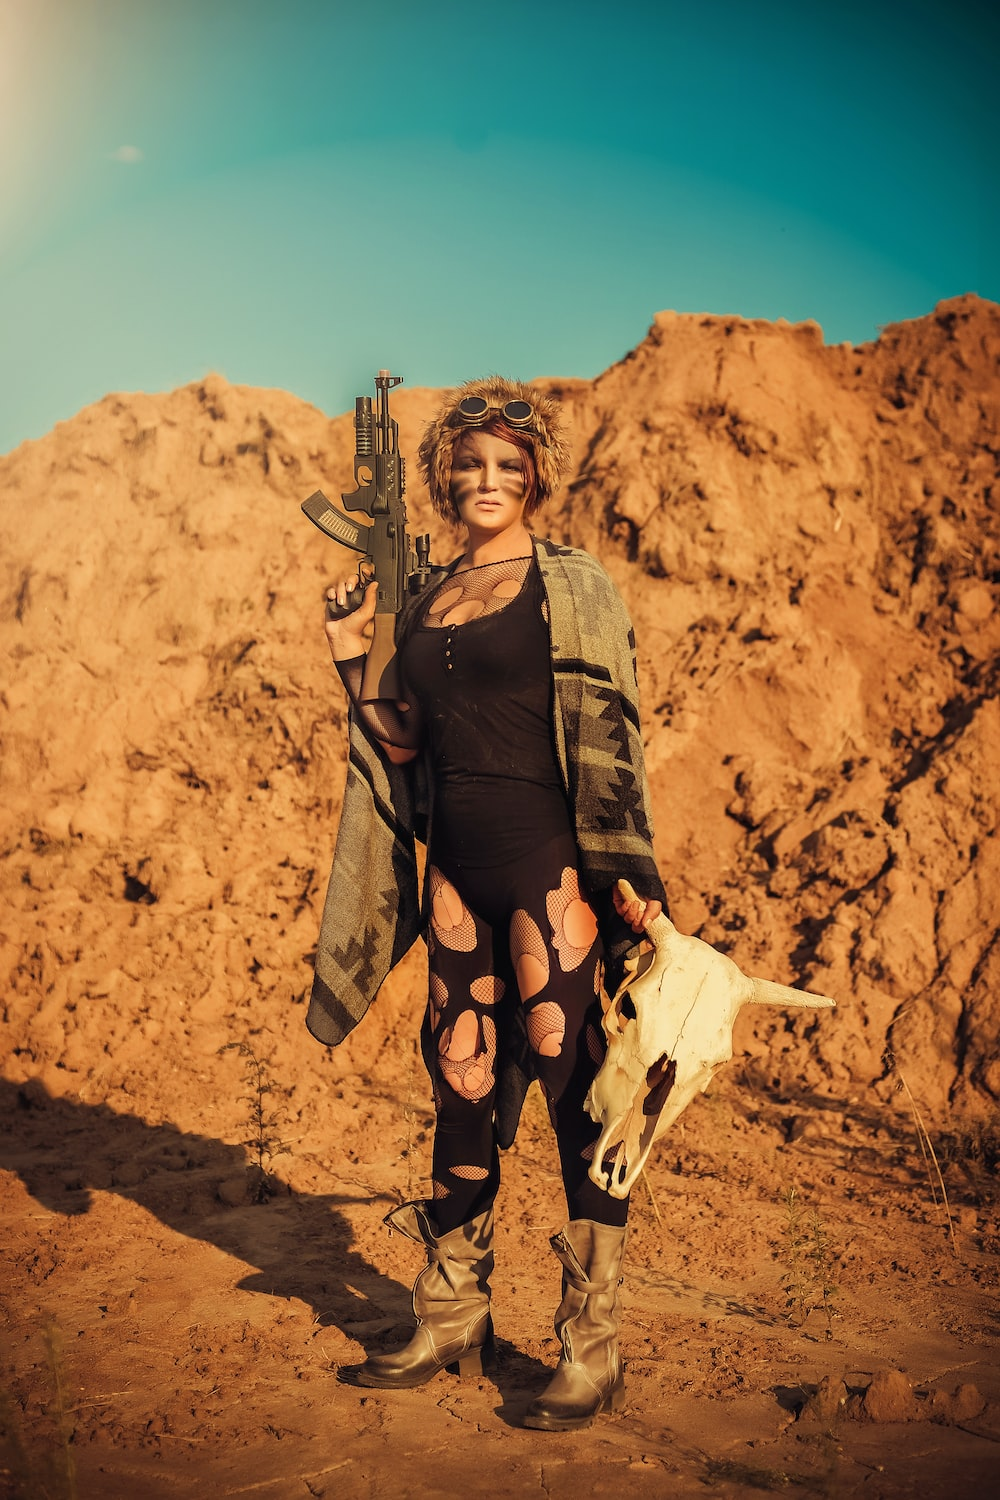 woman holding automatic rifle holding cattle skull at the rocky mountain